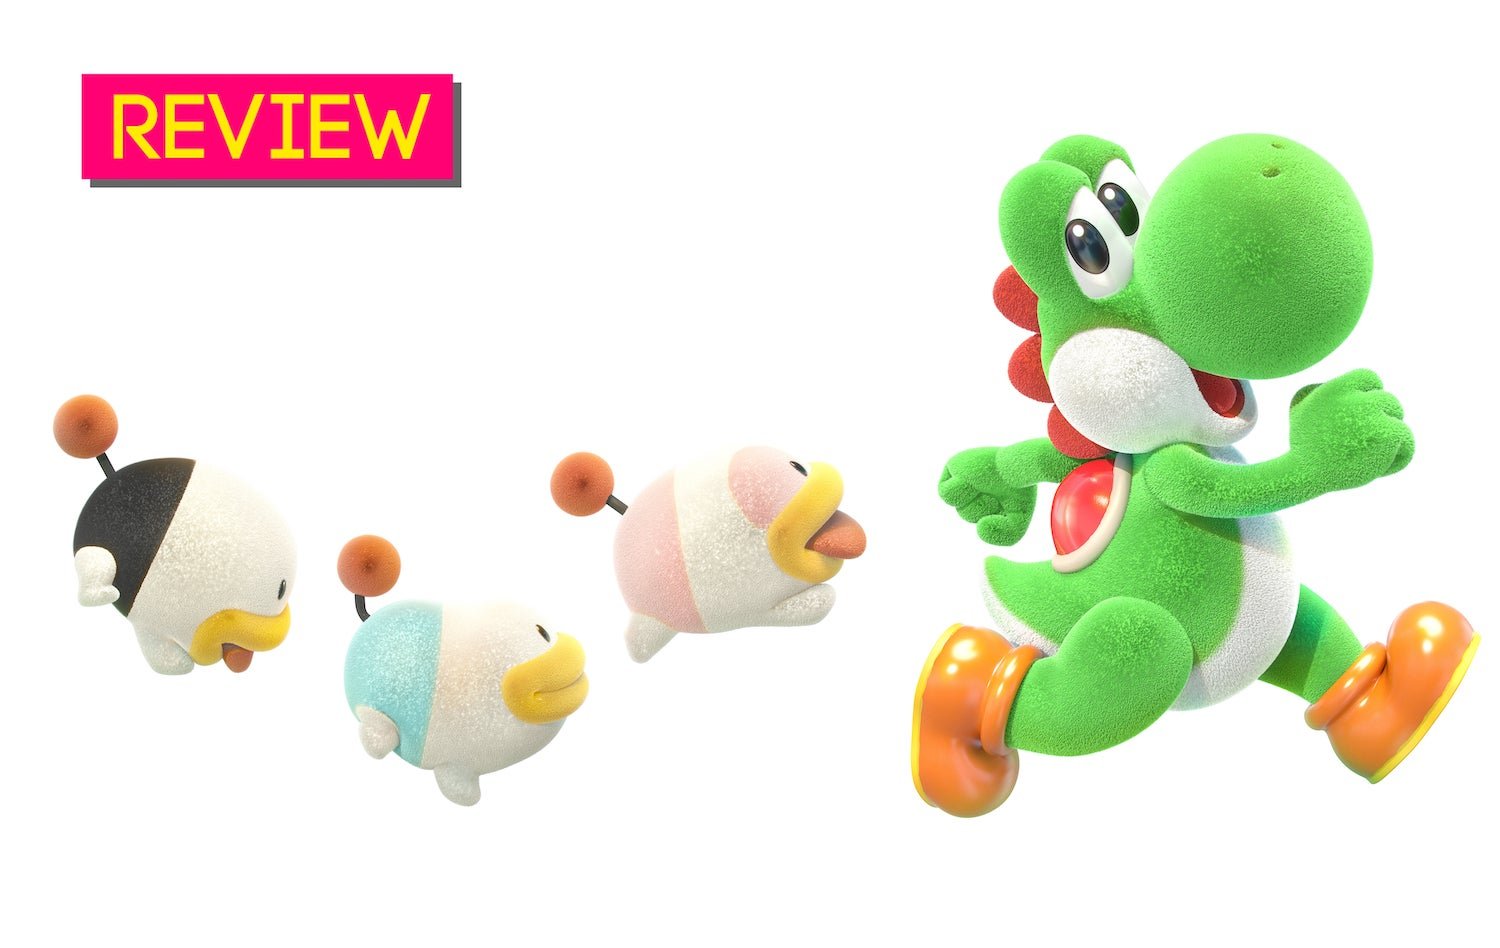 Yoshi's Crafted World: The Kotaku Review